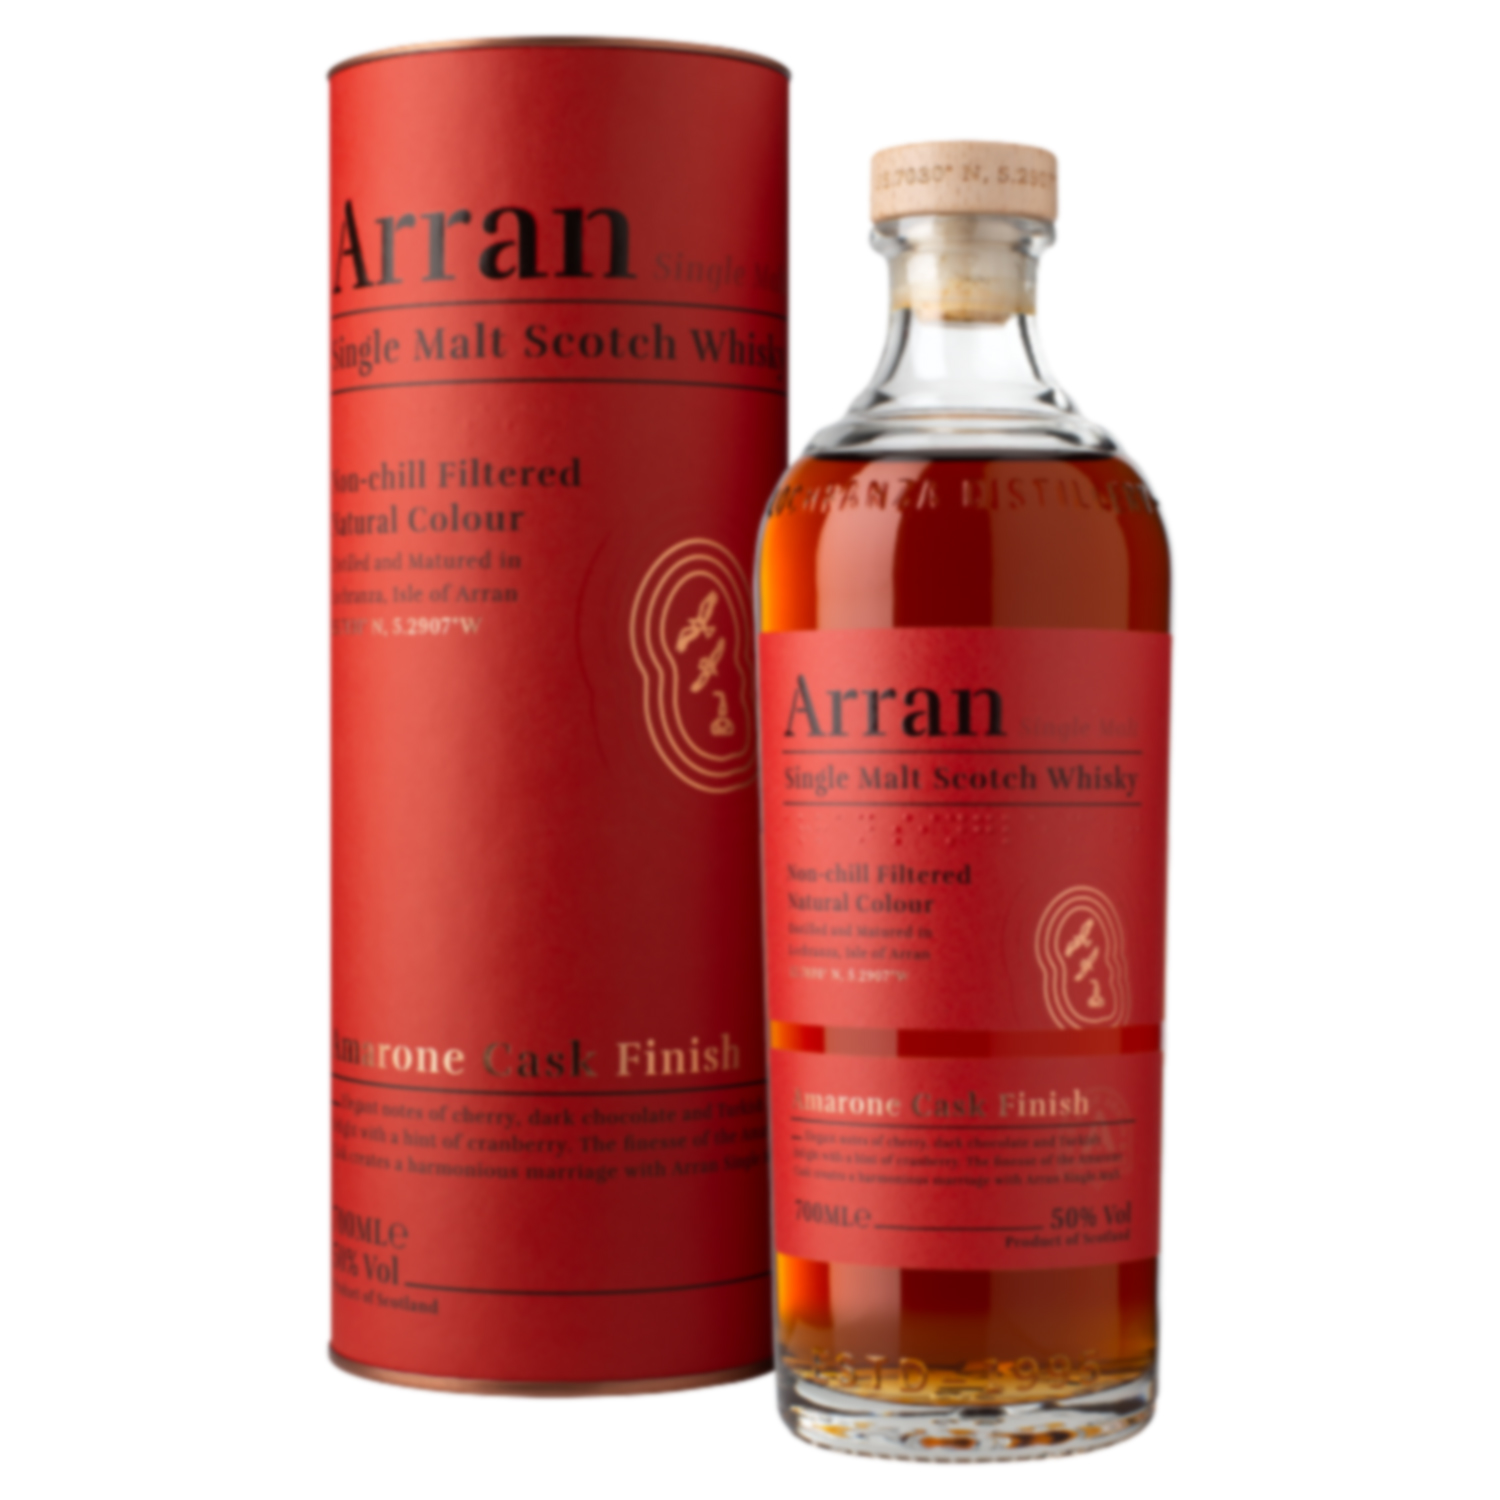 Whisky  - Arran - Amarone Cask Finish - Ecosse - Single Malt - Non Tourbé - 70 cl - 50°